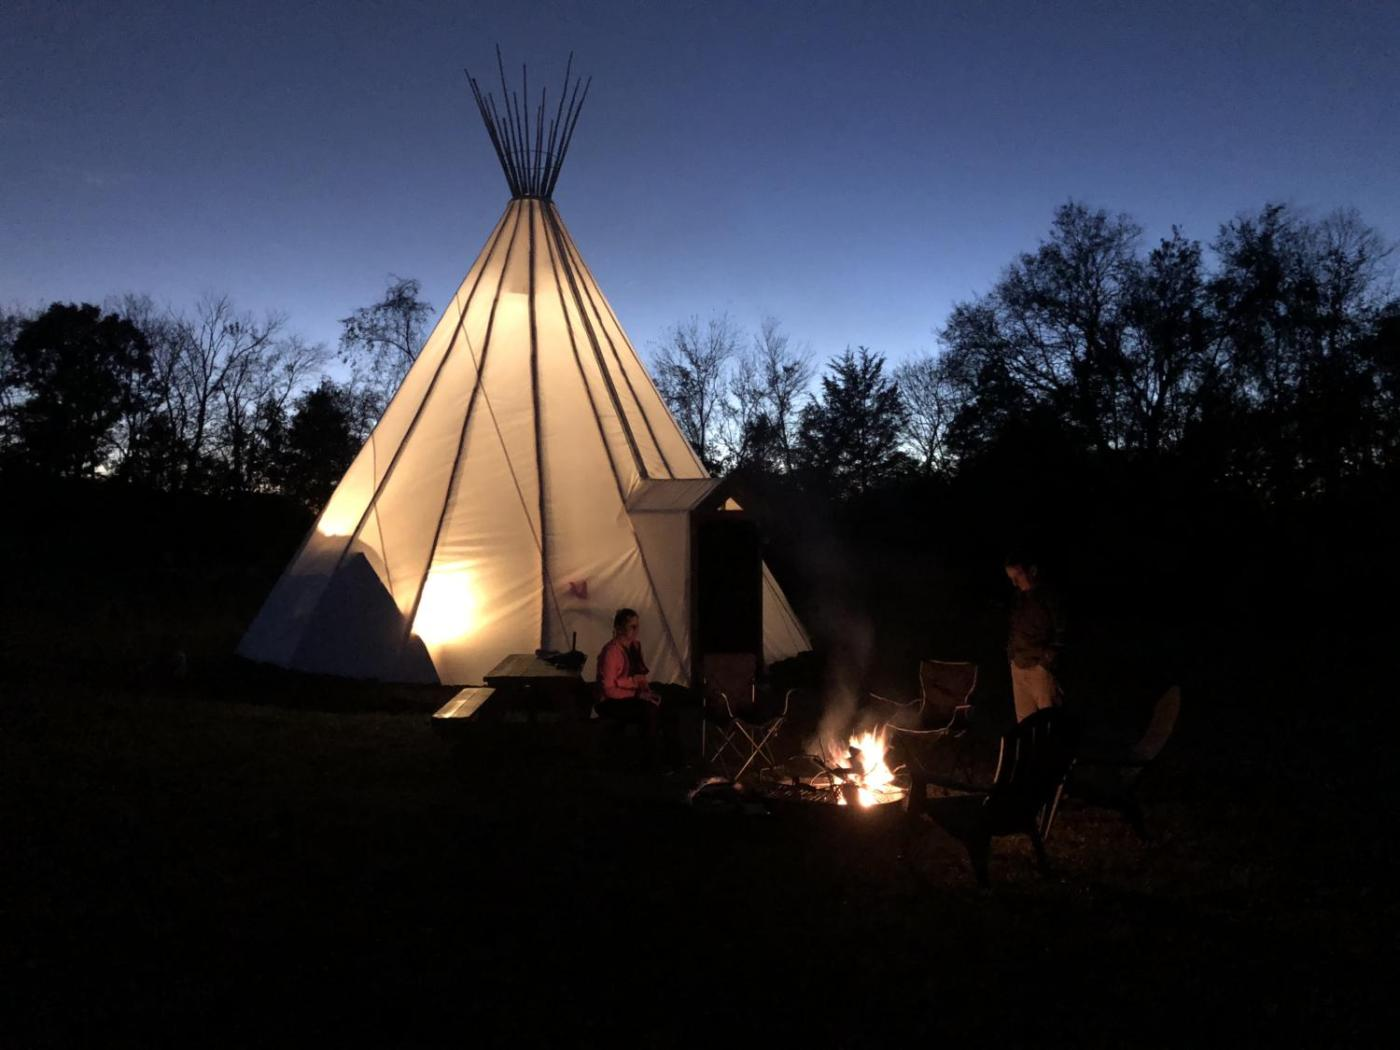 Our Tipi. Sandy River Adventures is just outside Farmville. They offer glamping in Tipis. We had to try it.